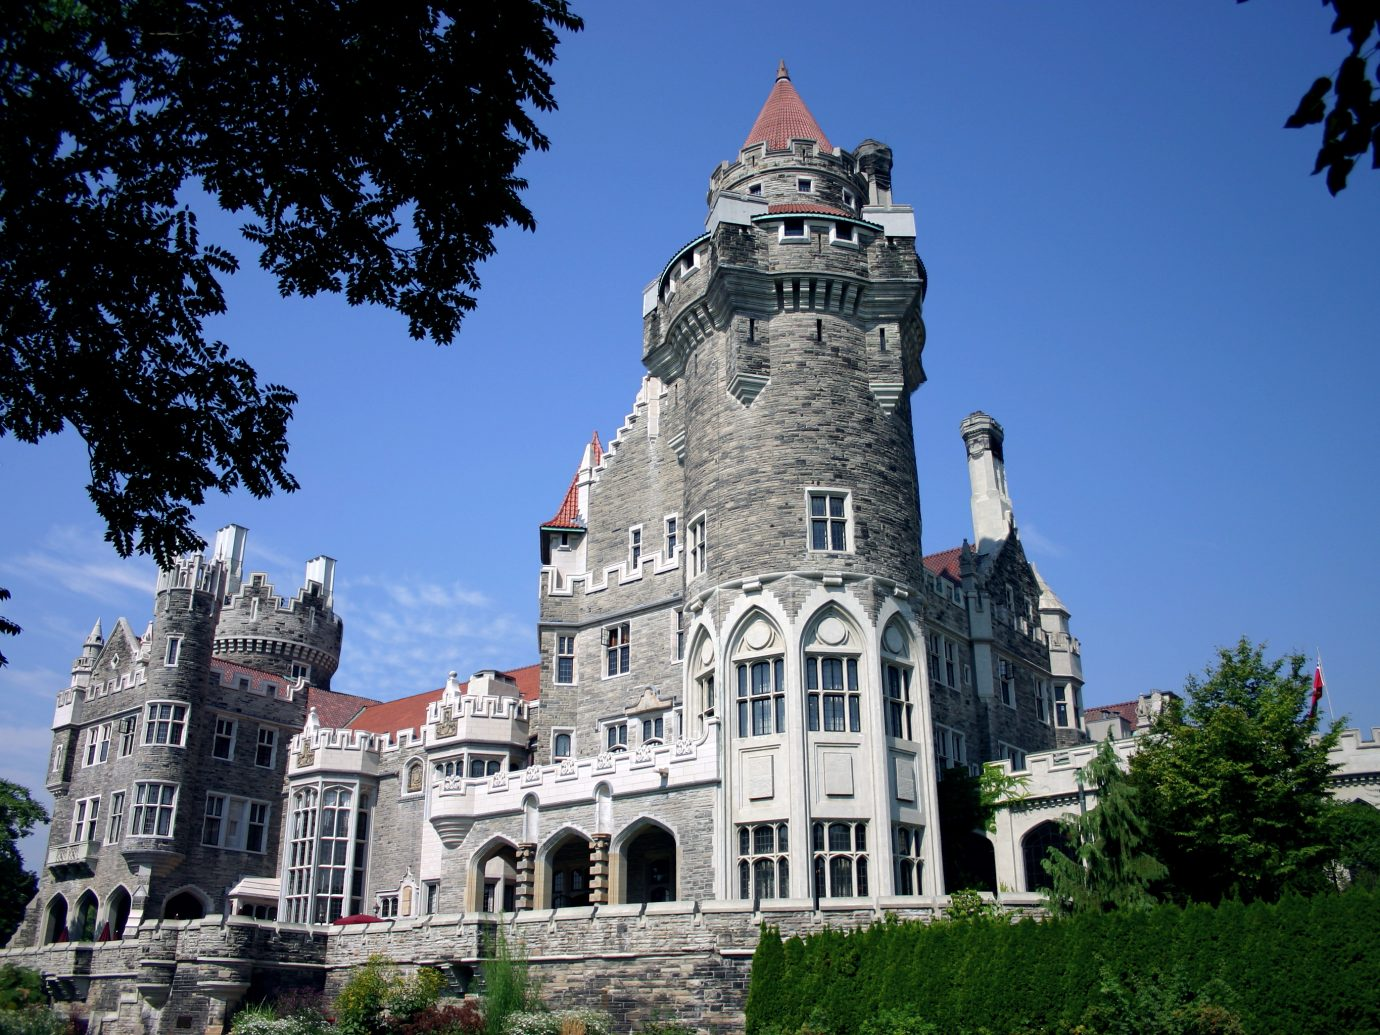 castle,palace,chateau,mansion,rich,affluence,affluent,tower,turret,old,wealth,opulent,prosperous